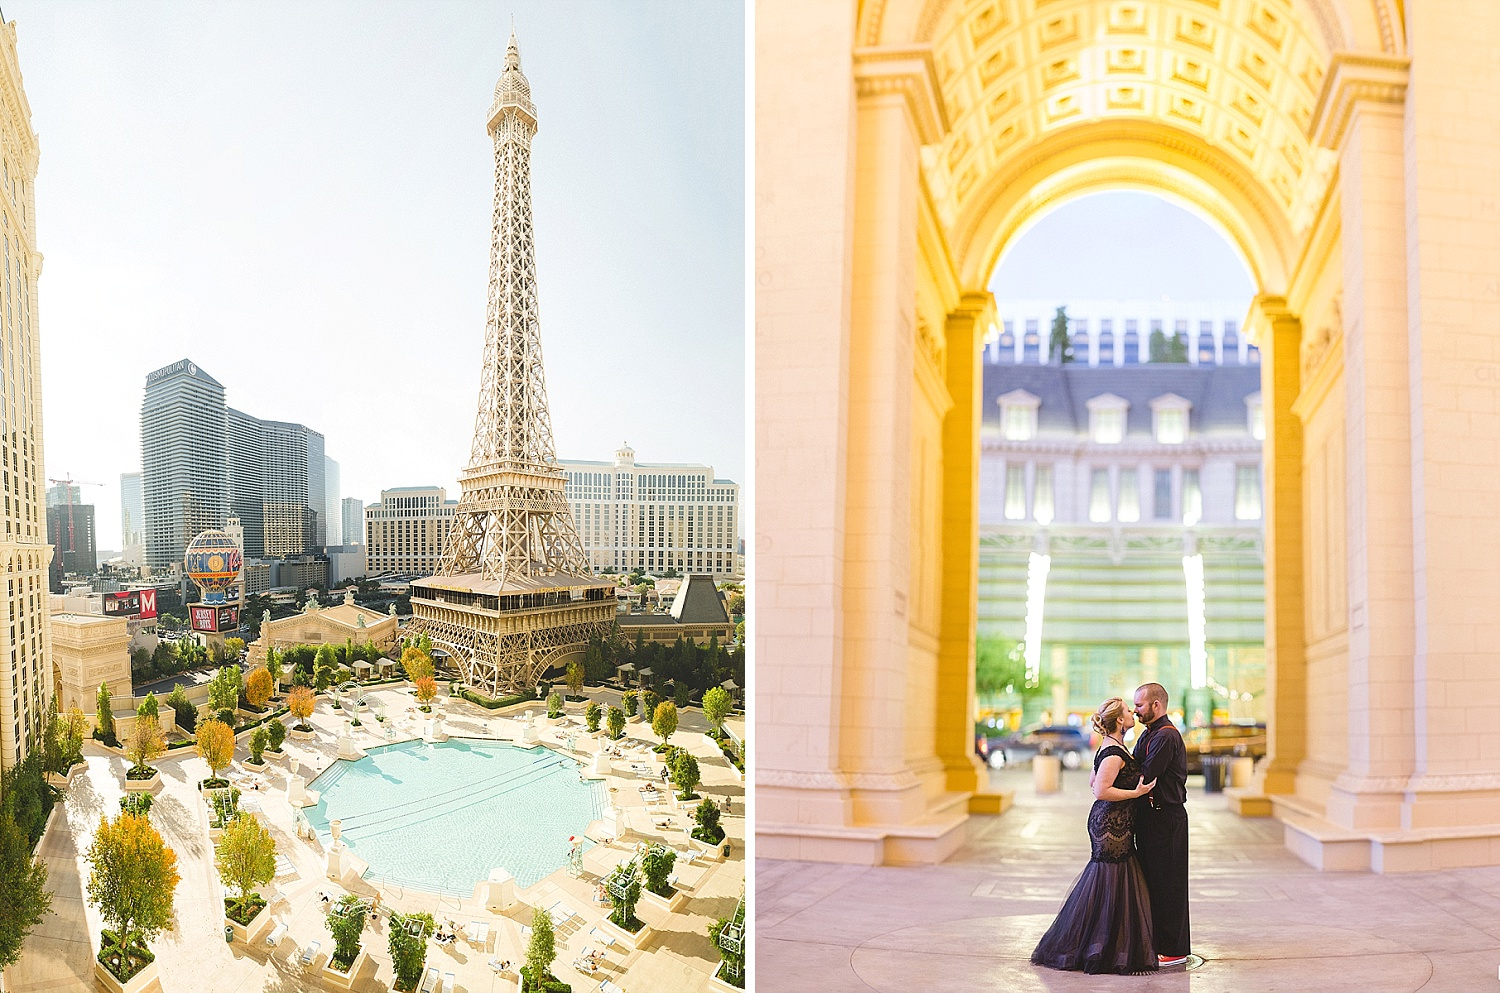 Las_Vegas_Paris_hotel_Dallas_destination_wedding_photographer.jpg